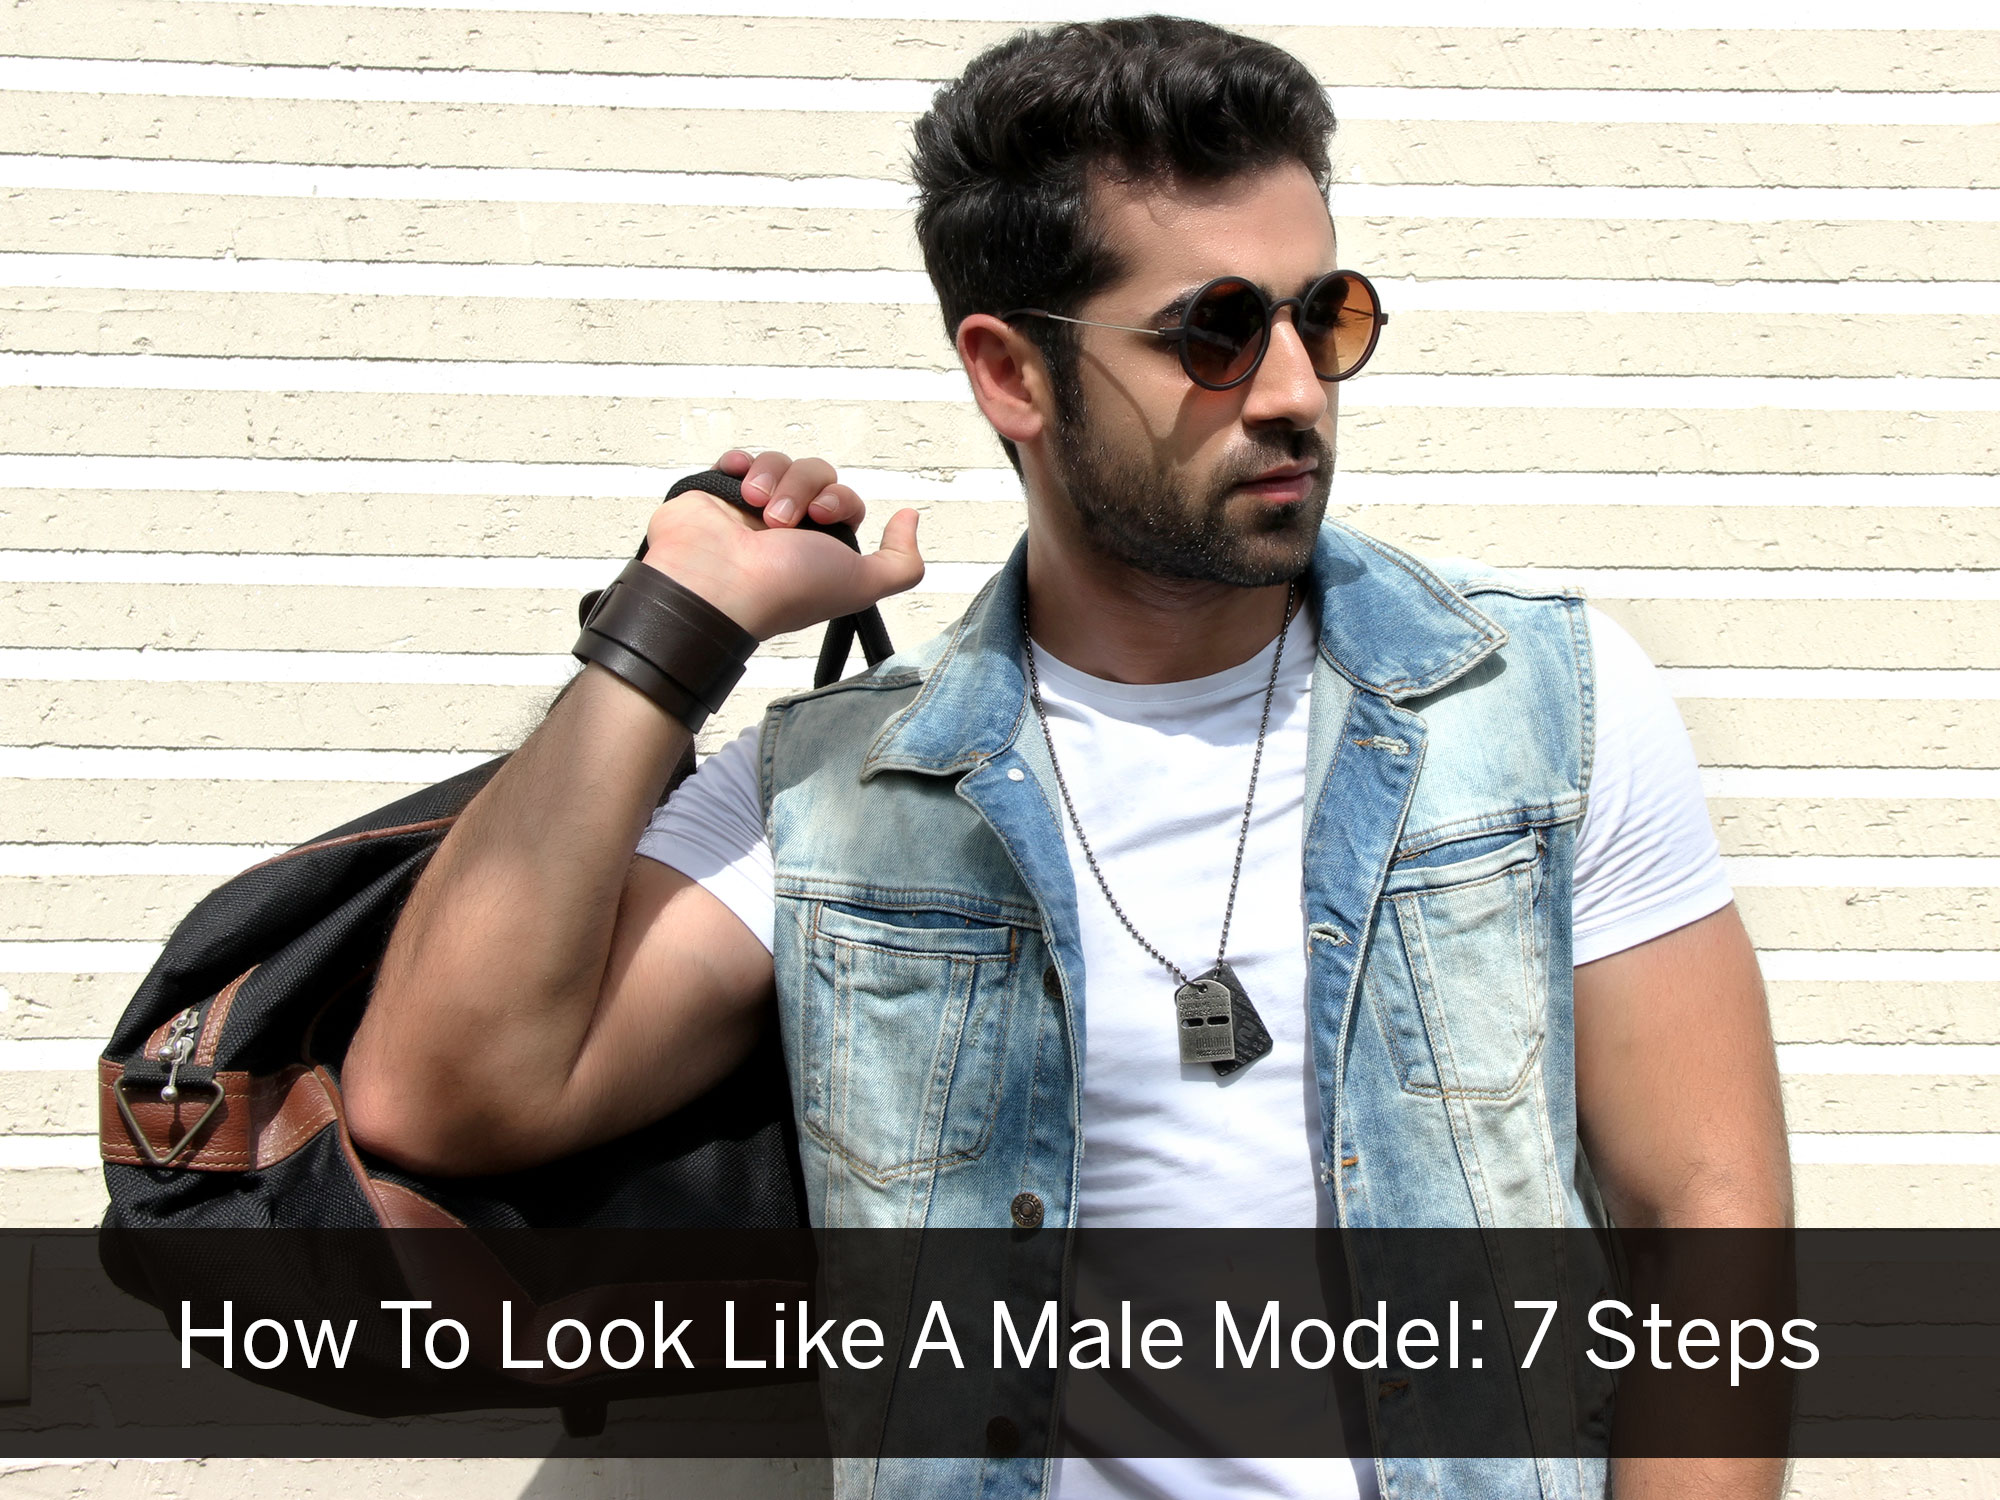 Look like Male model